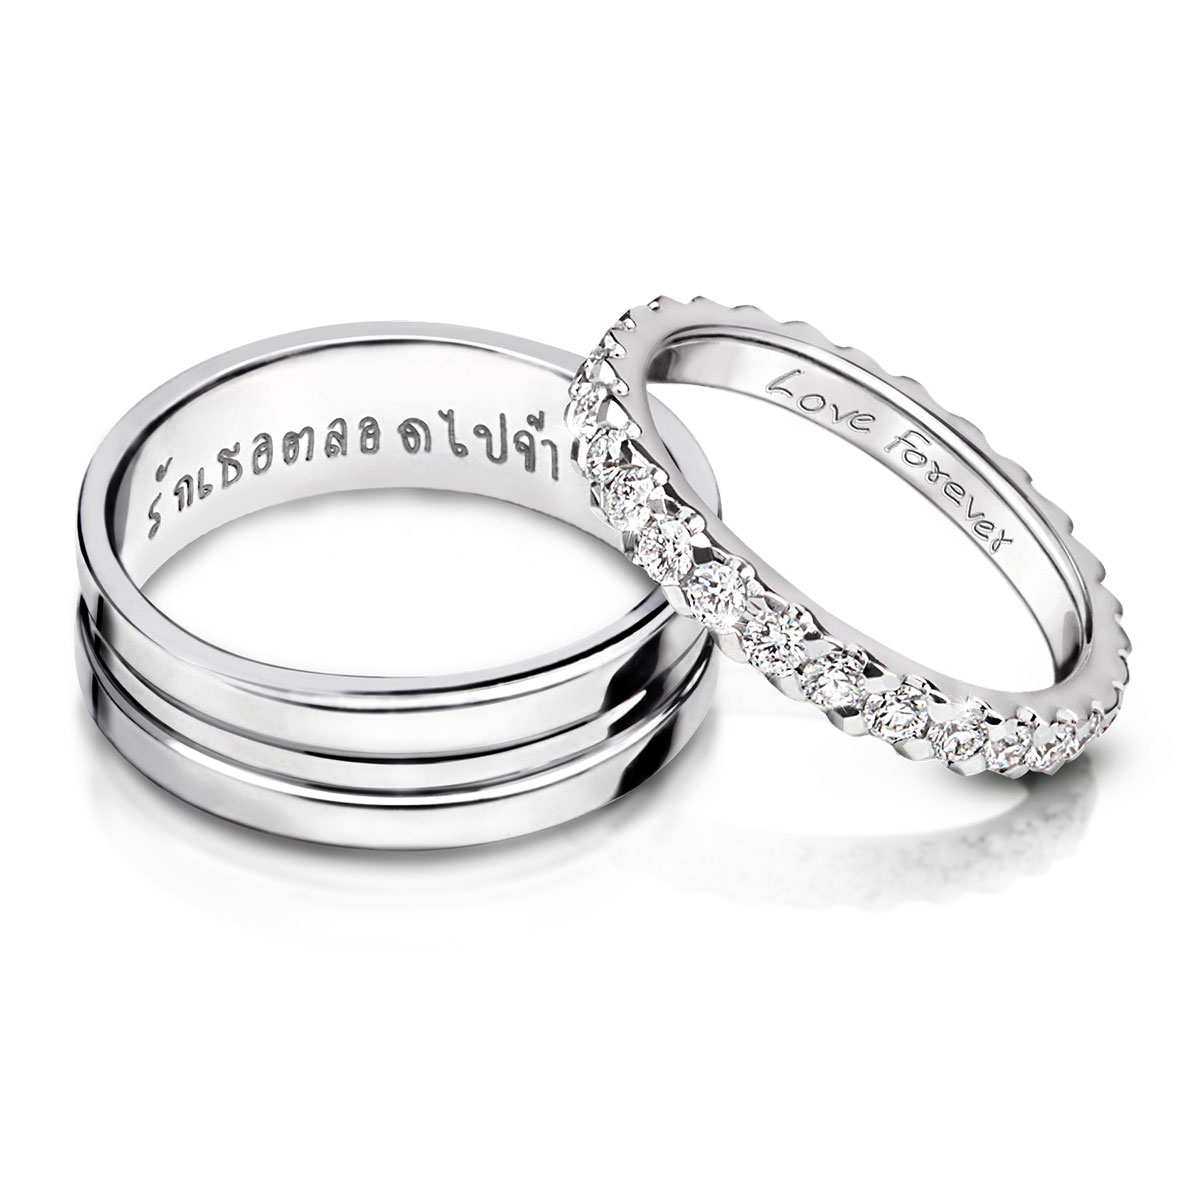 3-Classic_Couple-rings